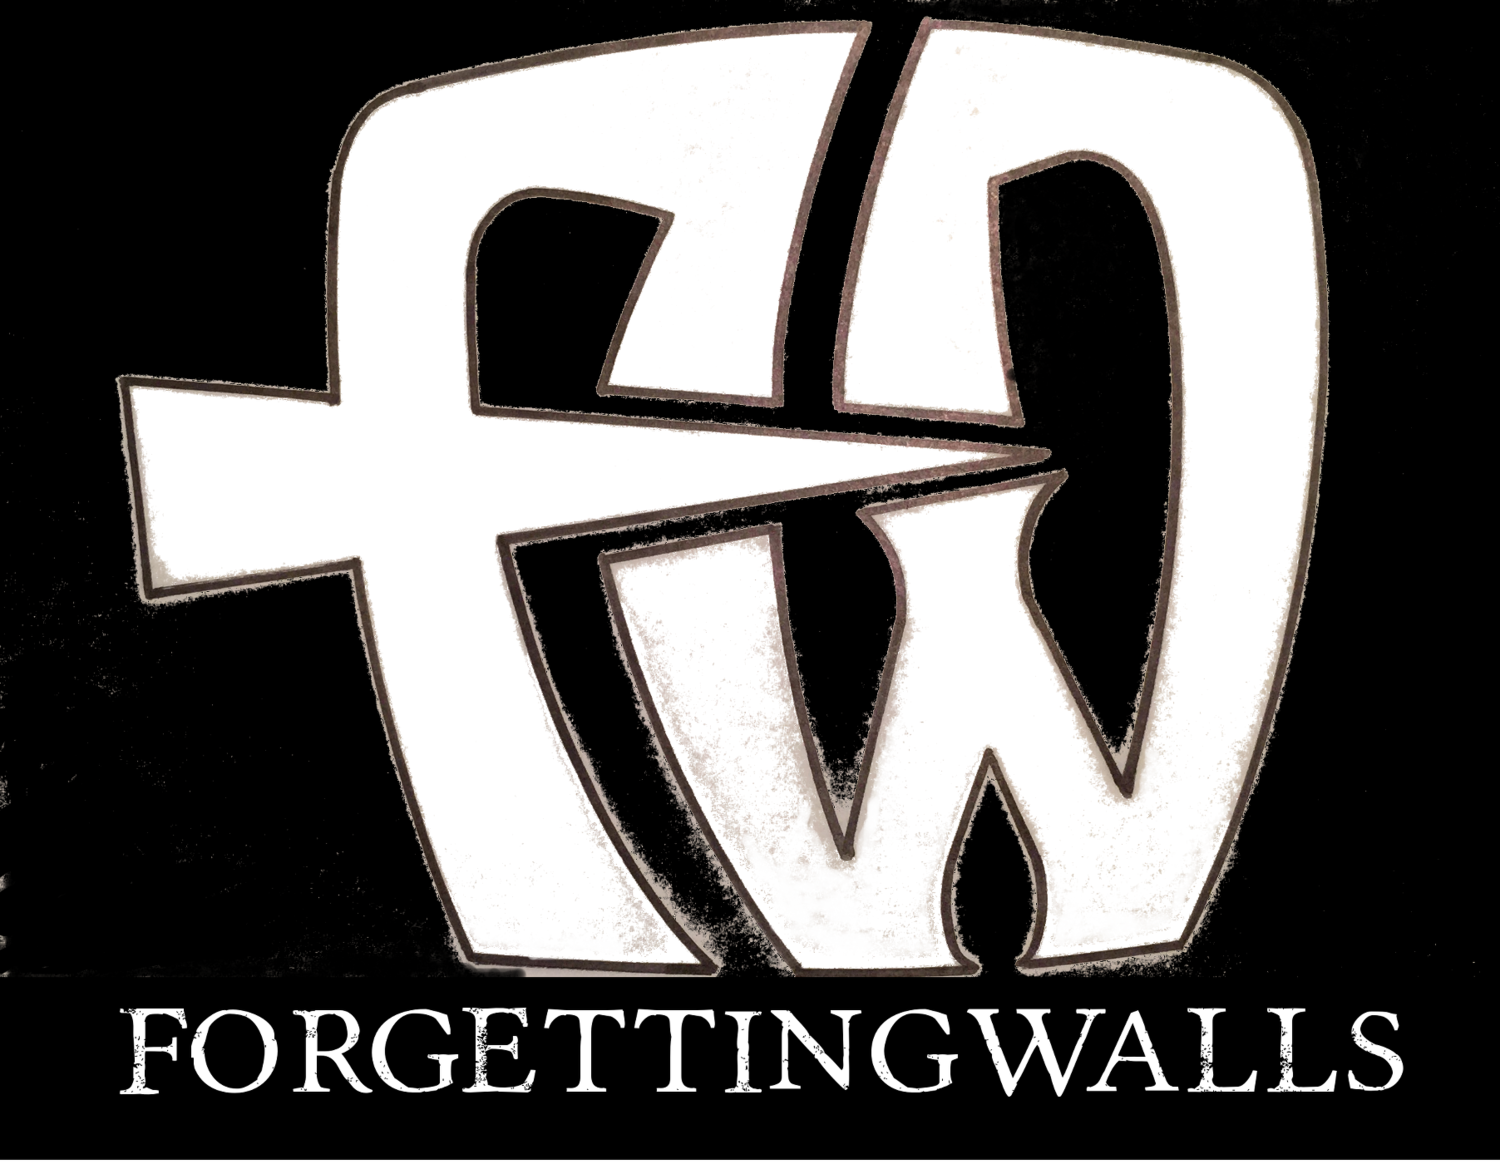 ForgettingWalls